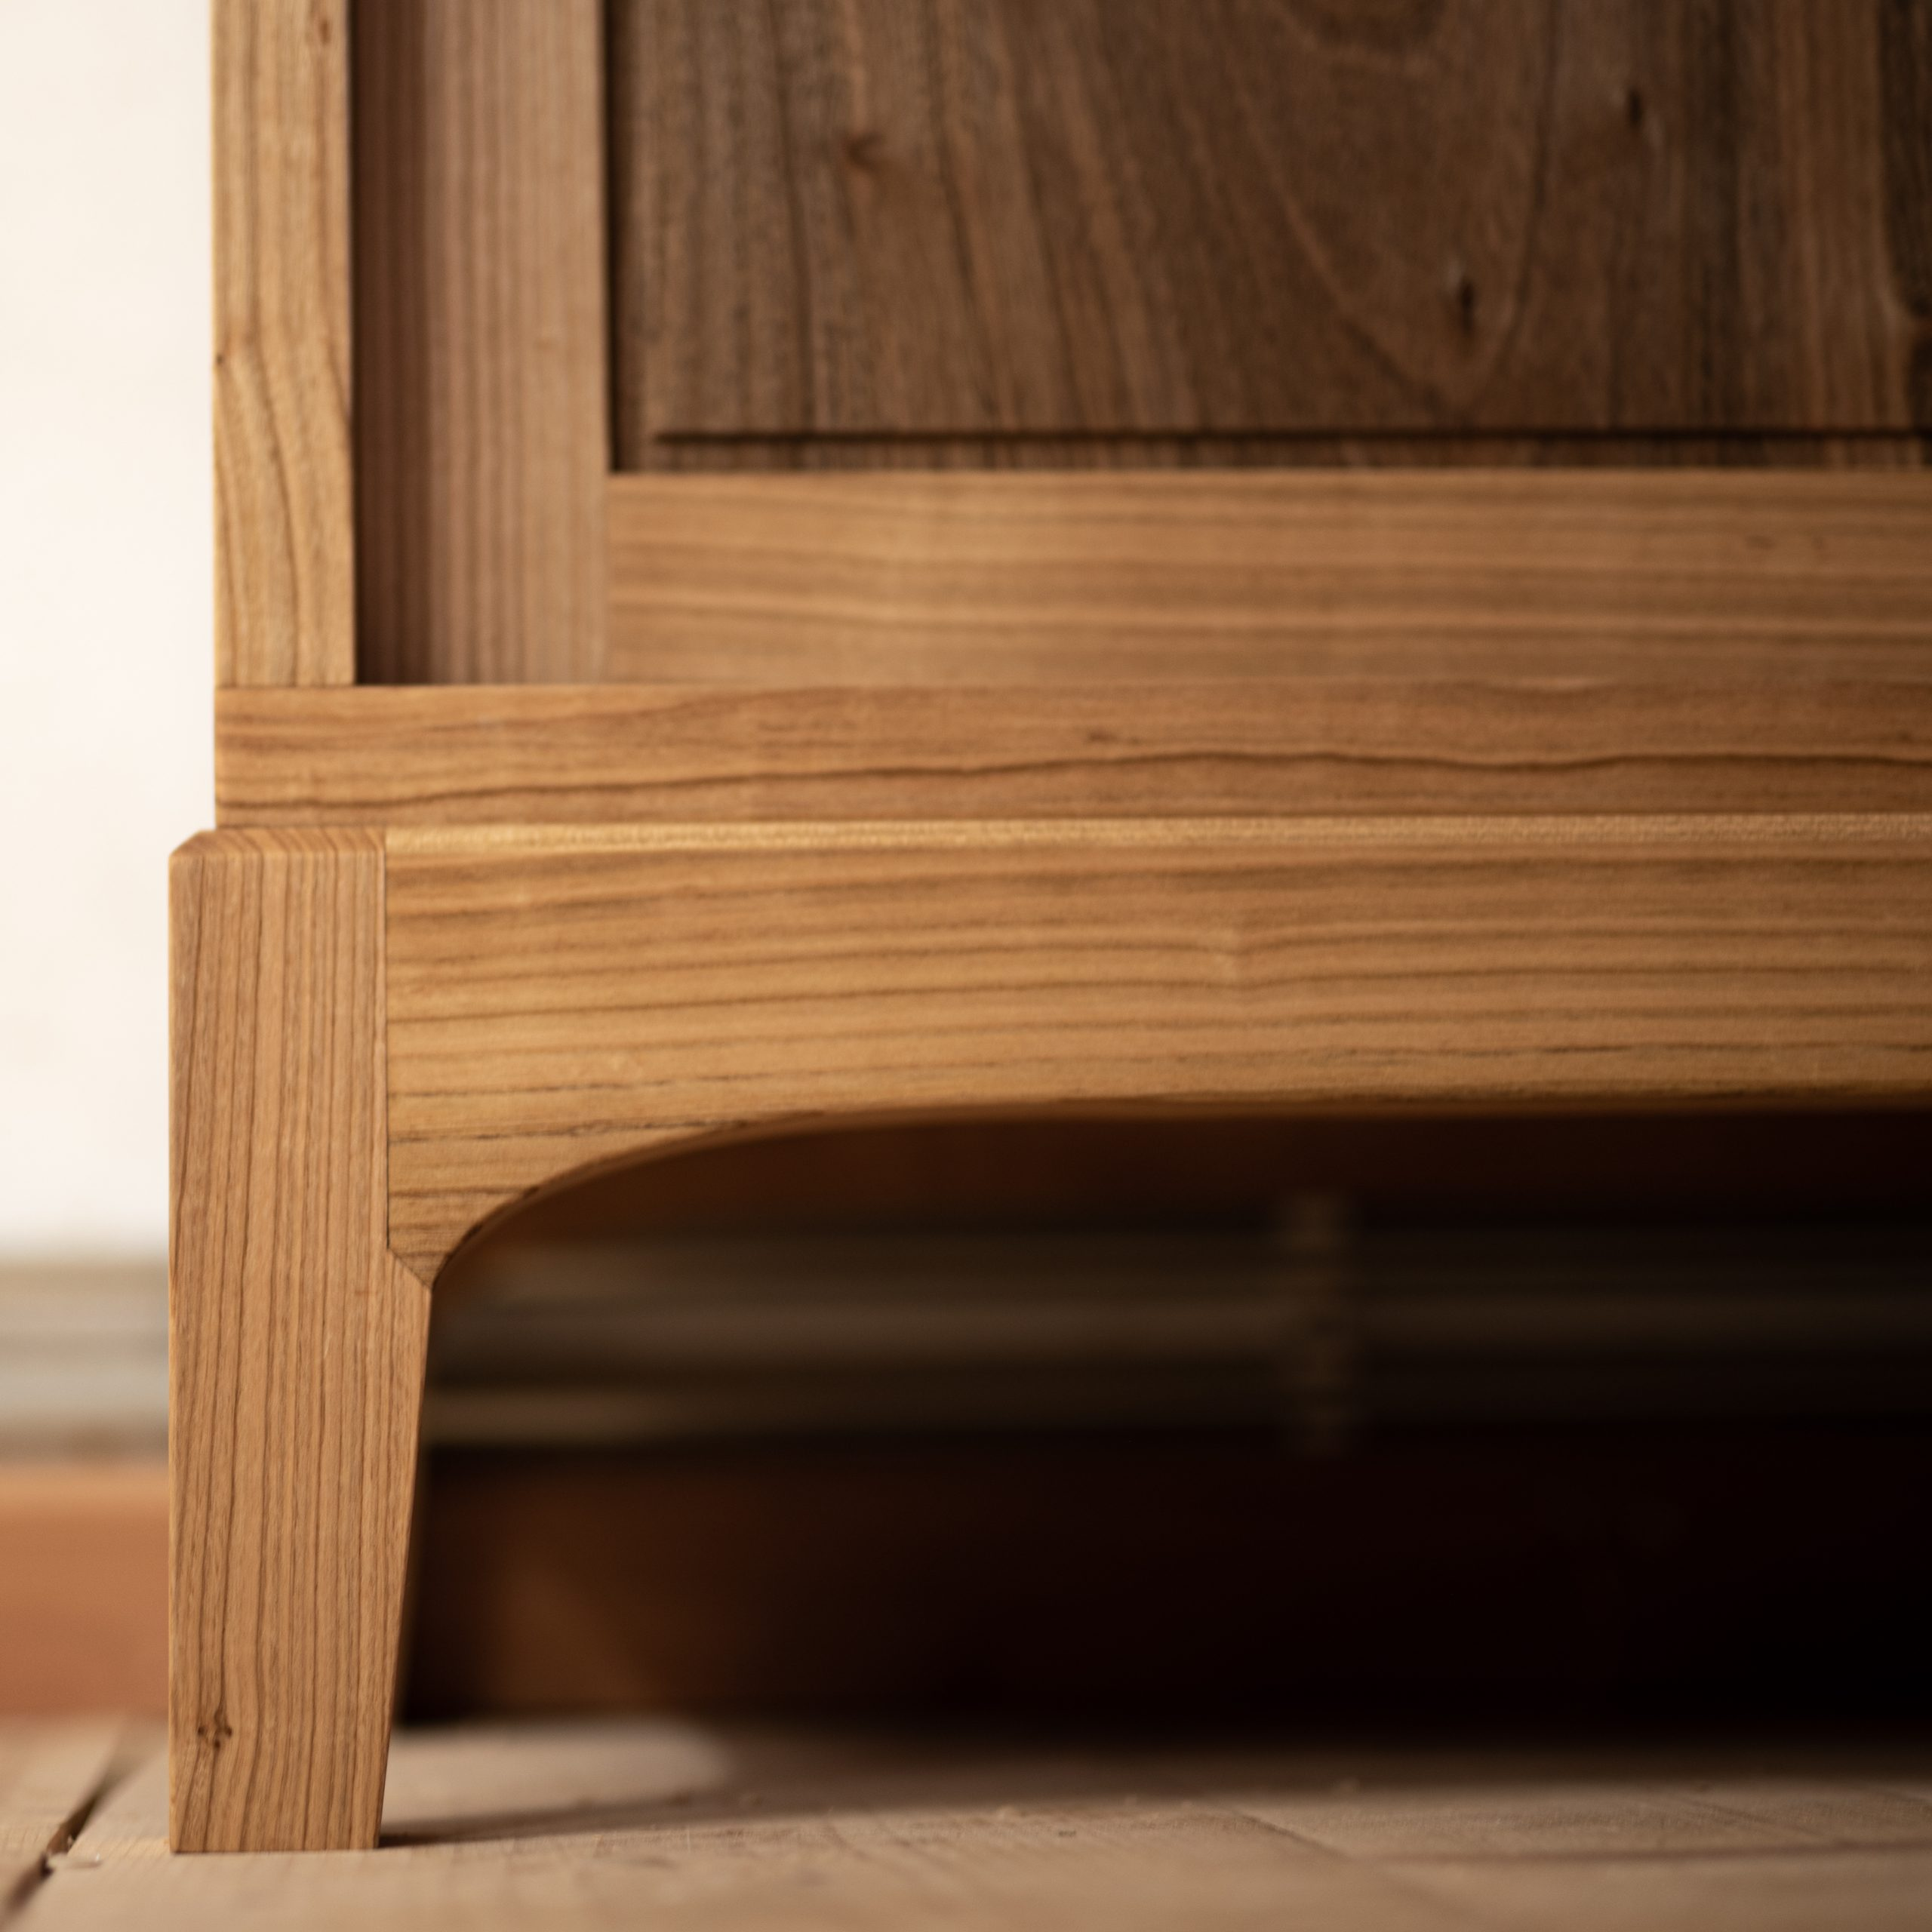 sideboard_cabinet-41-q